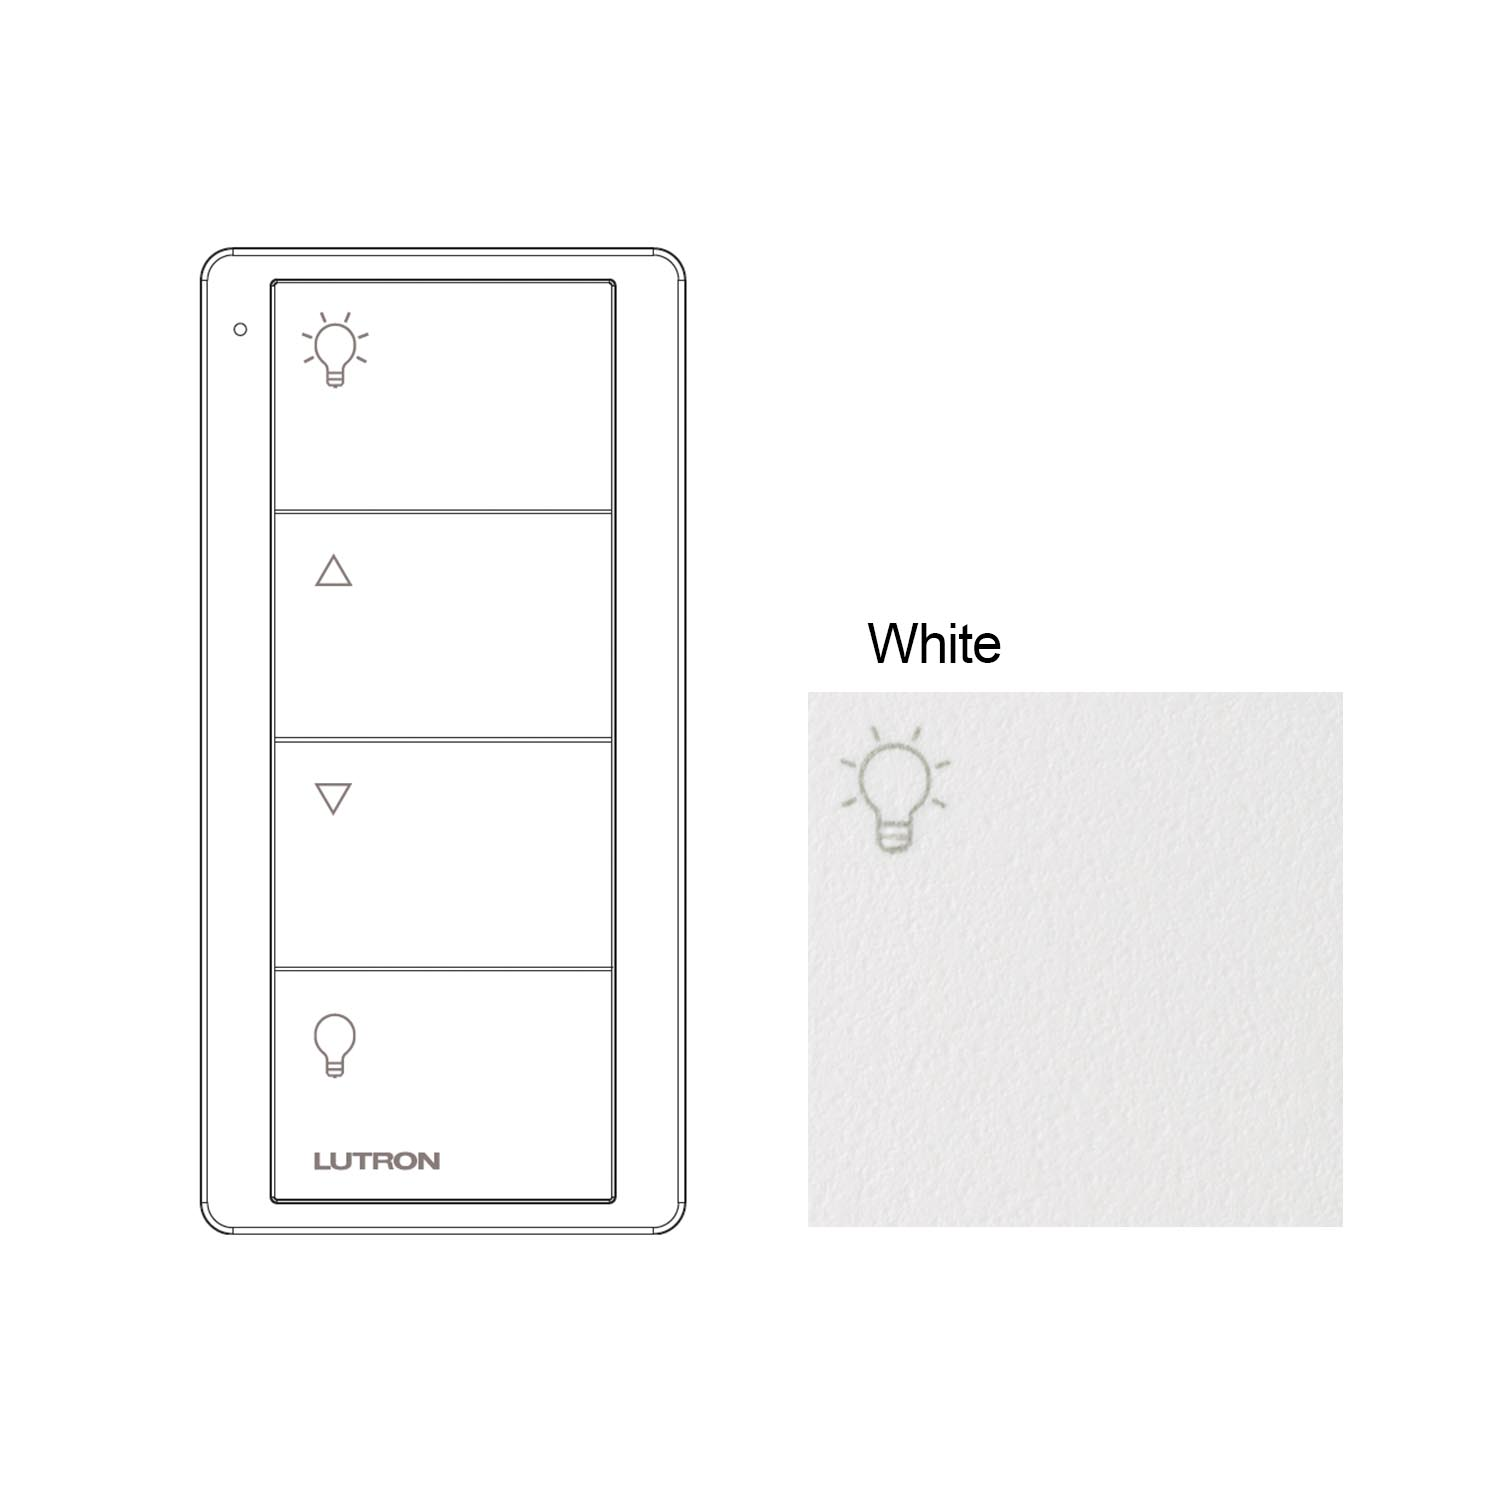 Lutron 4 Zone Lighting Control Lutron Pico Wireless White Remote Control | 4 Button Zone